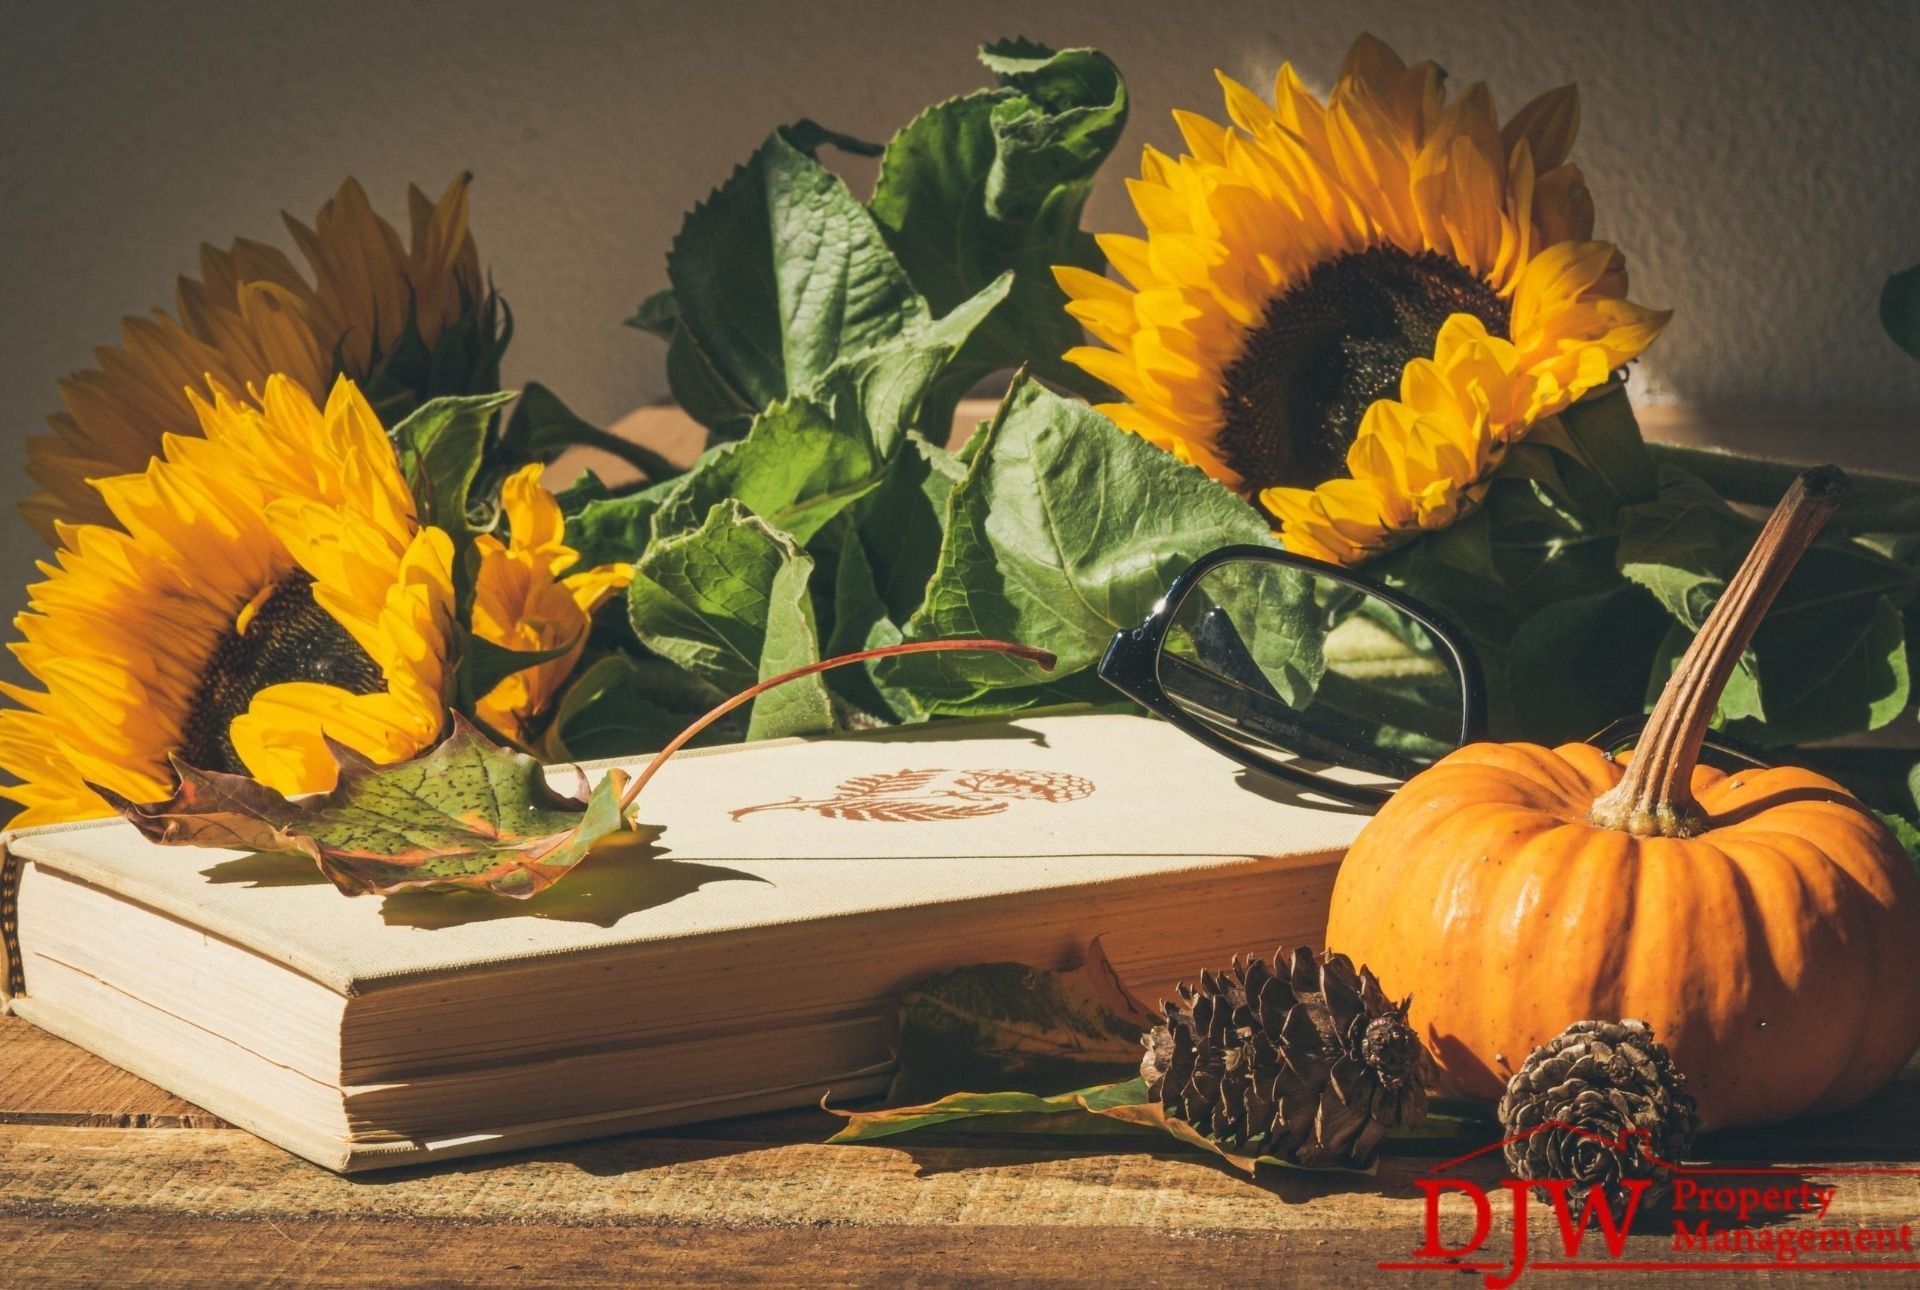 Sunflowers rest on a book. A small pumpkin sits beside them.